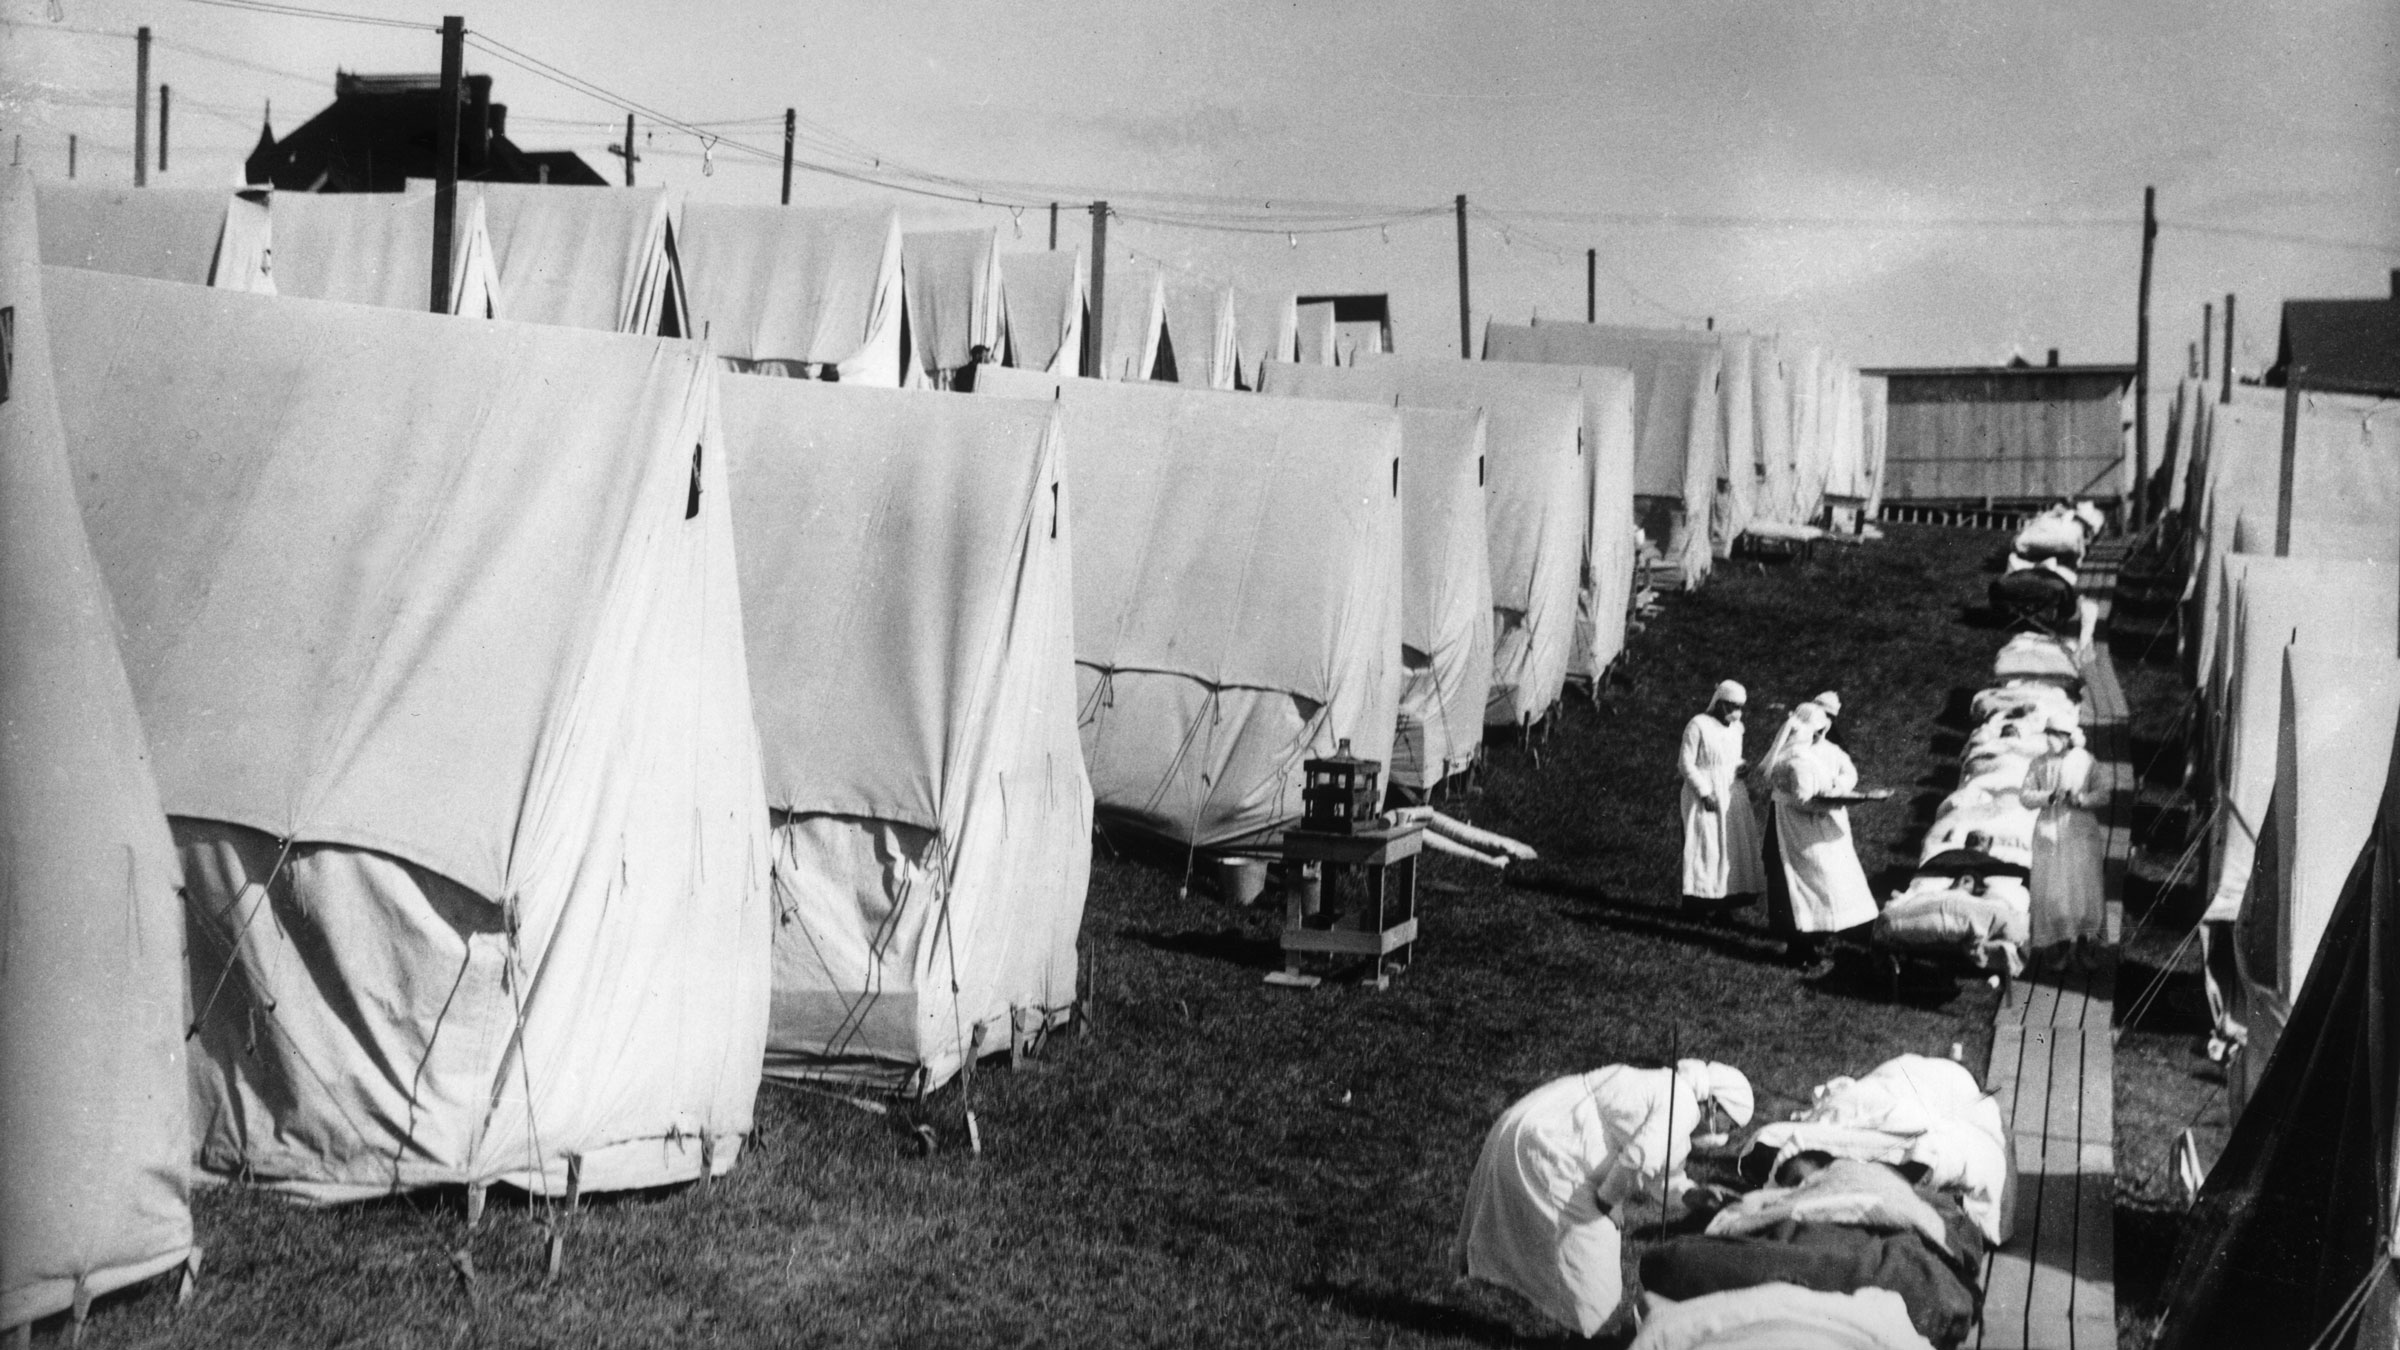 Nurses in Lawrence, Massachusetts, care for victims during the Spanish flu epidemic in 1918.